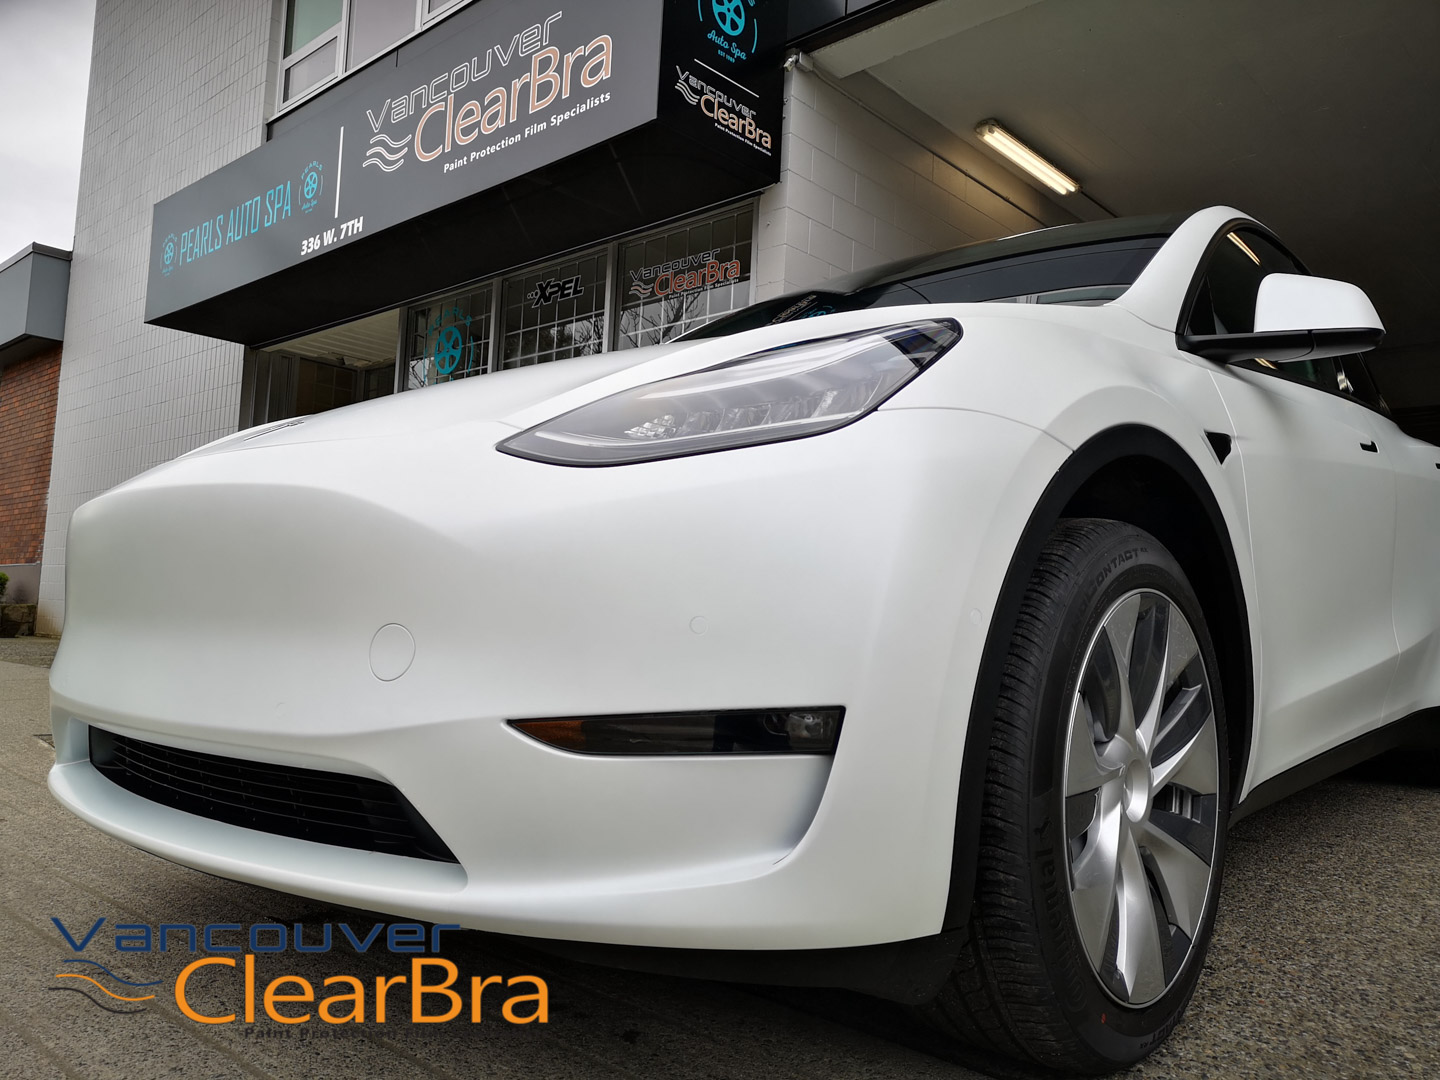 xpel-ultimate-xpel-stealth-satin-clear-bra-paint-protection-film-Vancouver-ClearBra-158.jpg